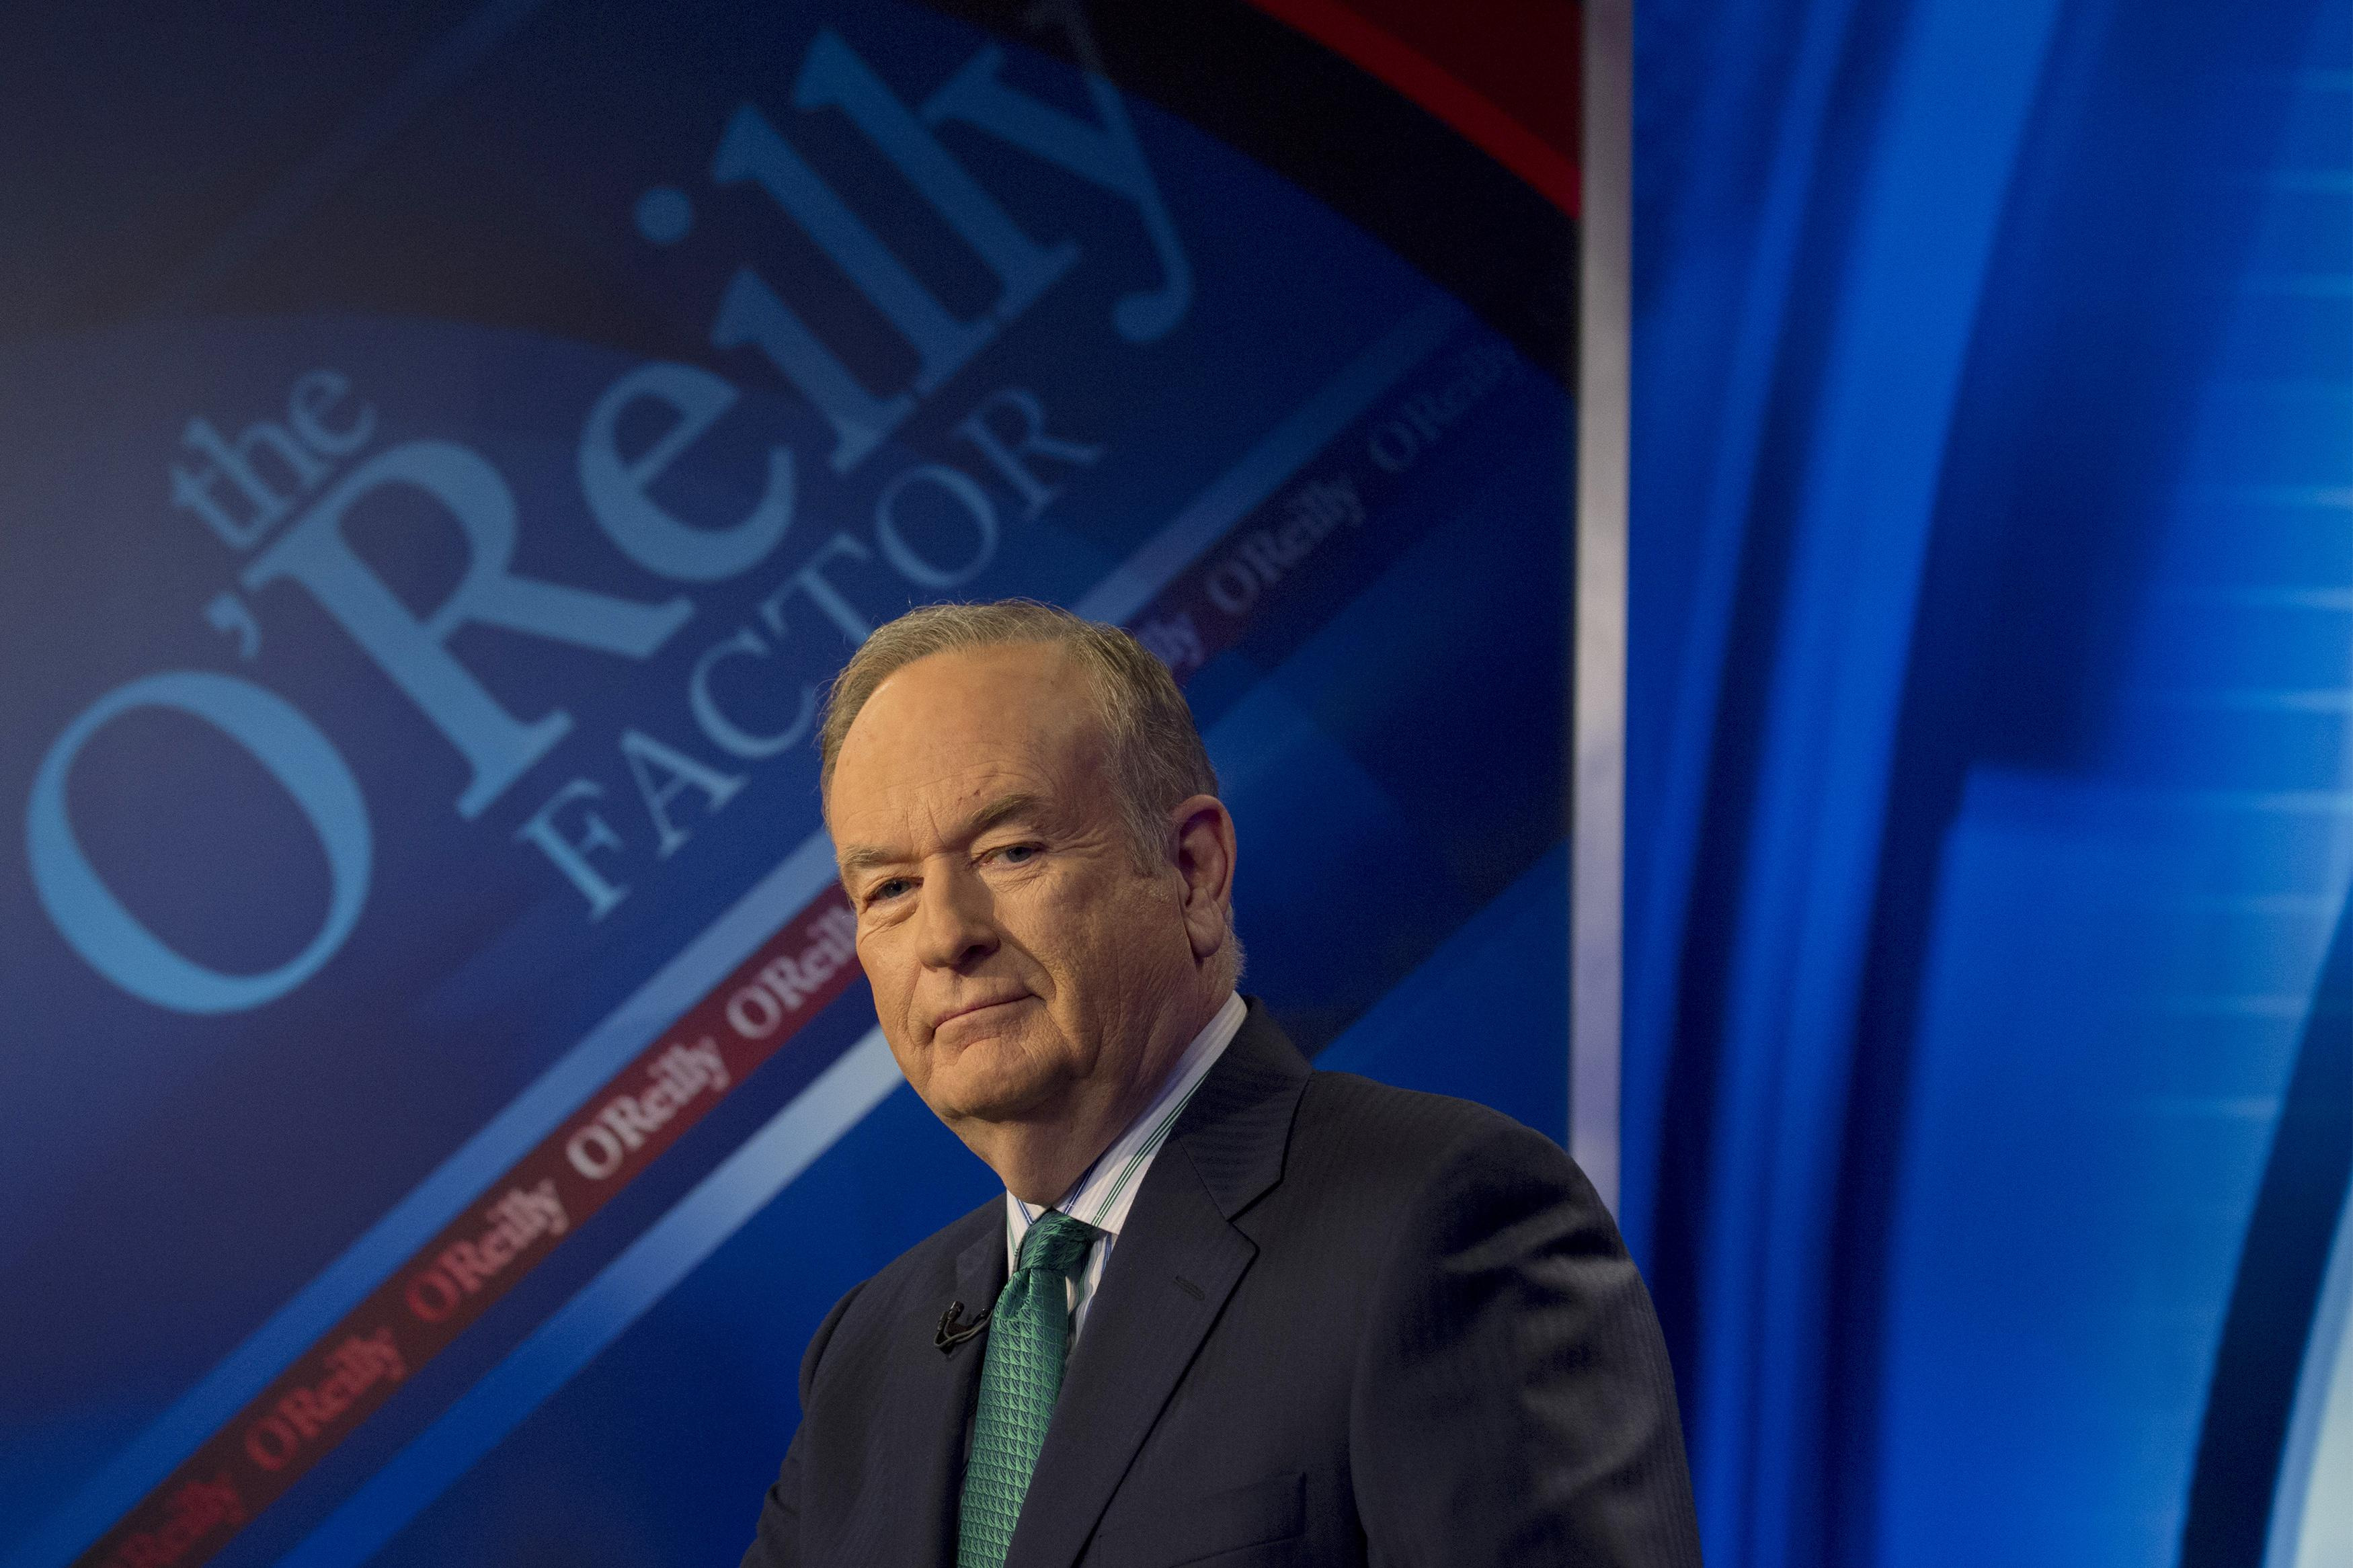 Fox News 'to sack O'Reilly' over sexual harassment claims